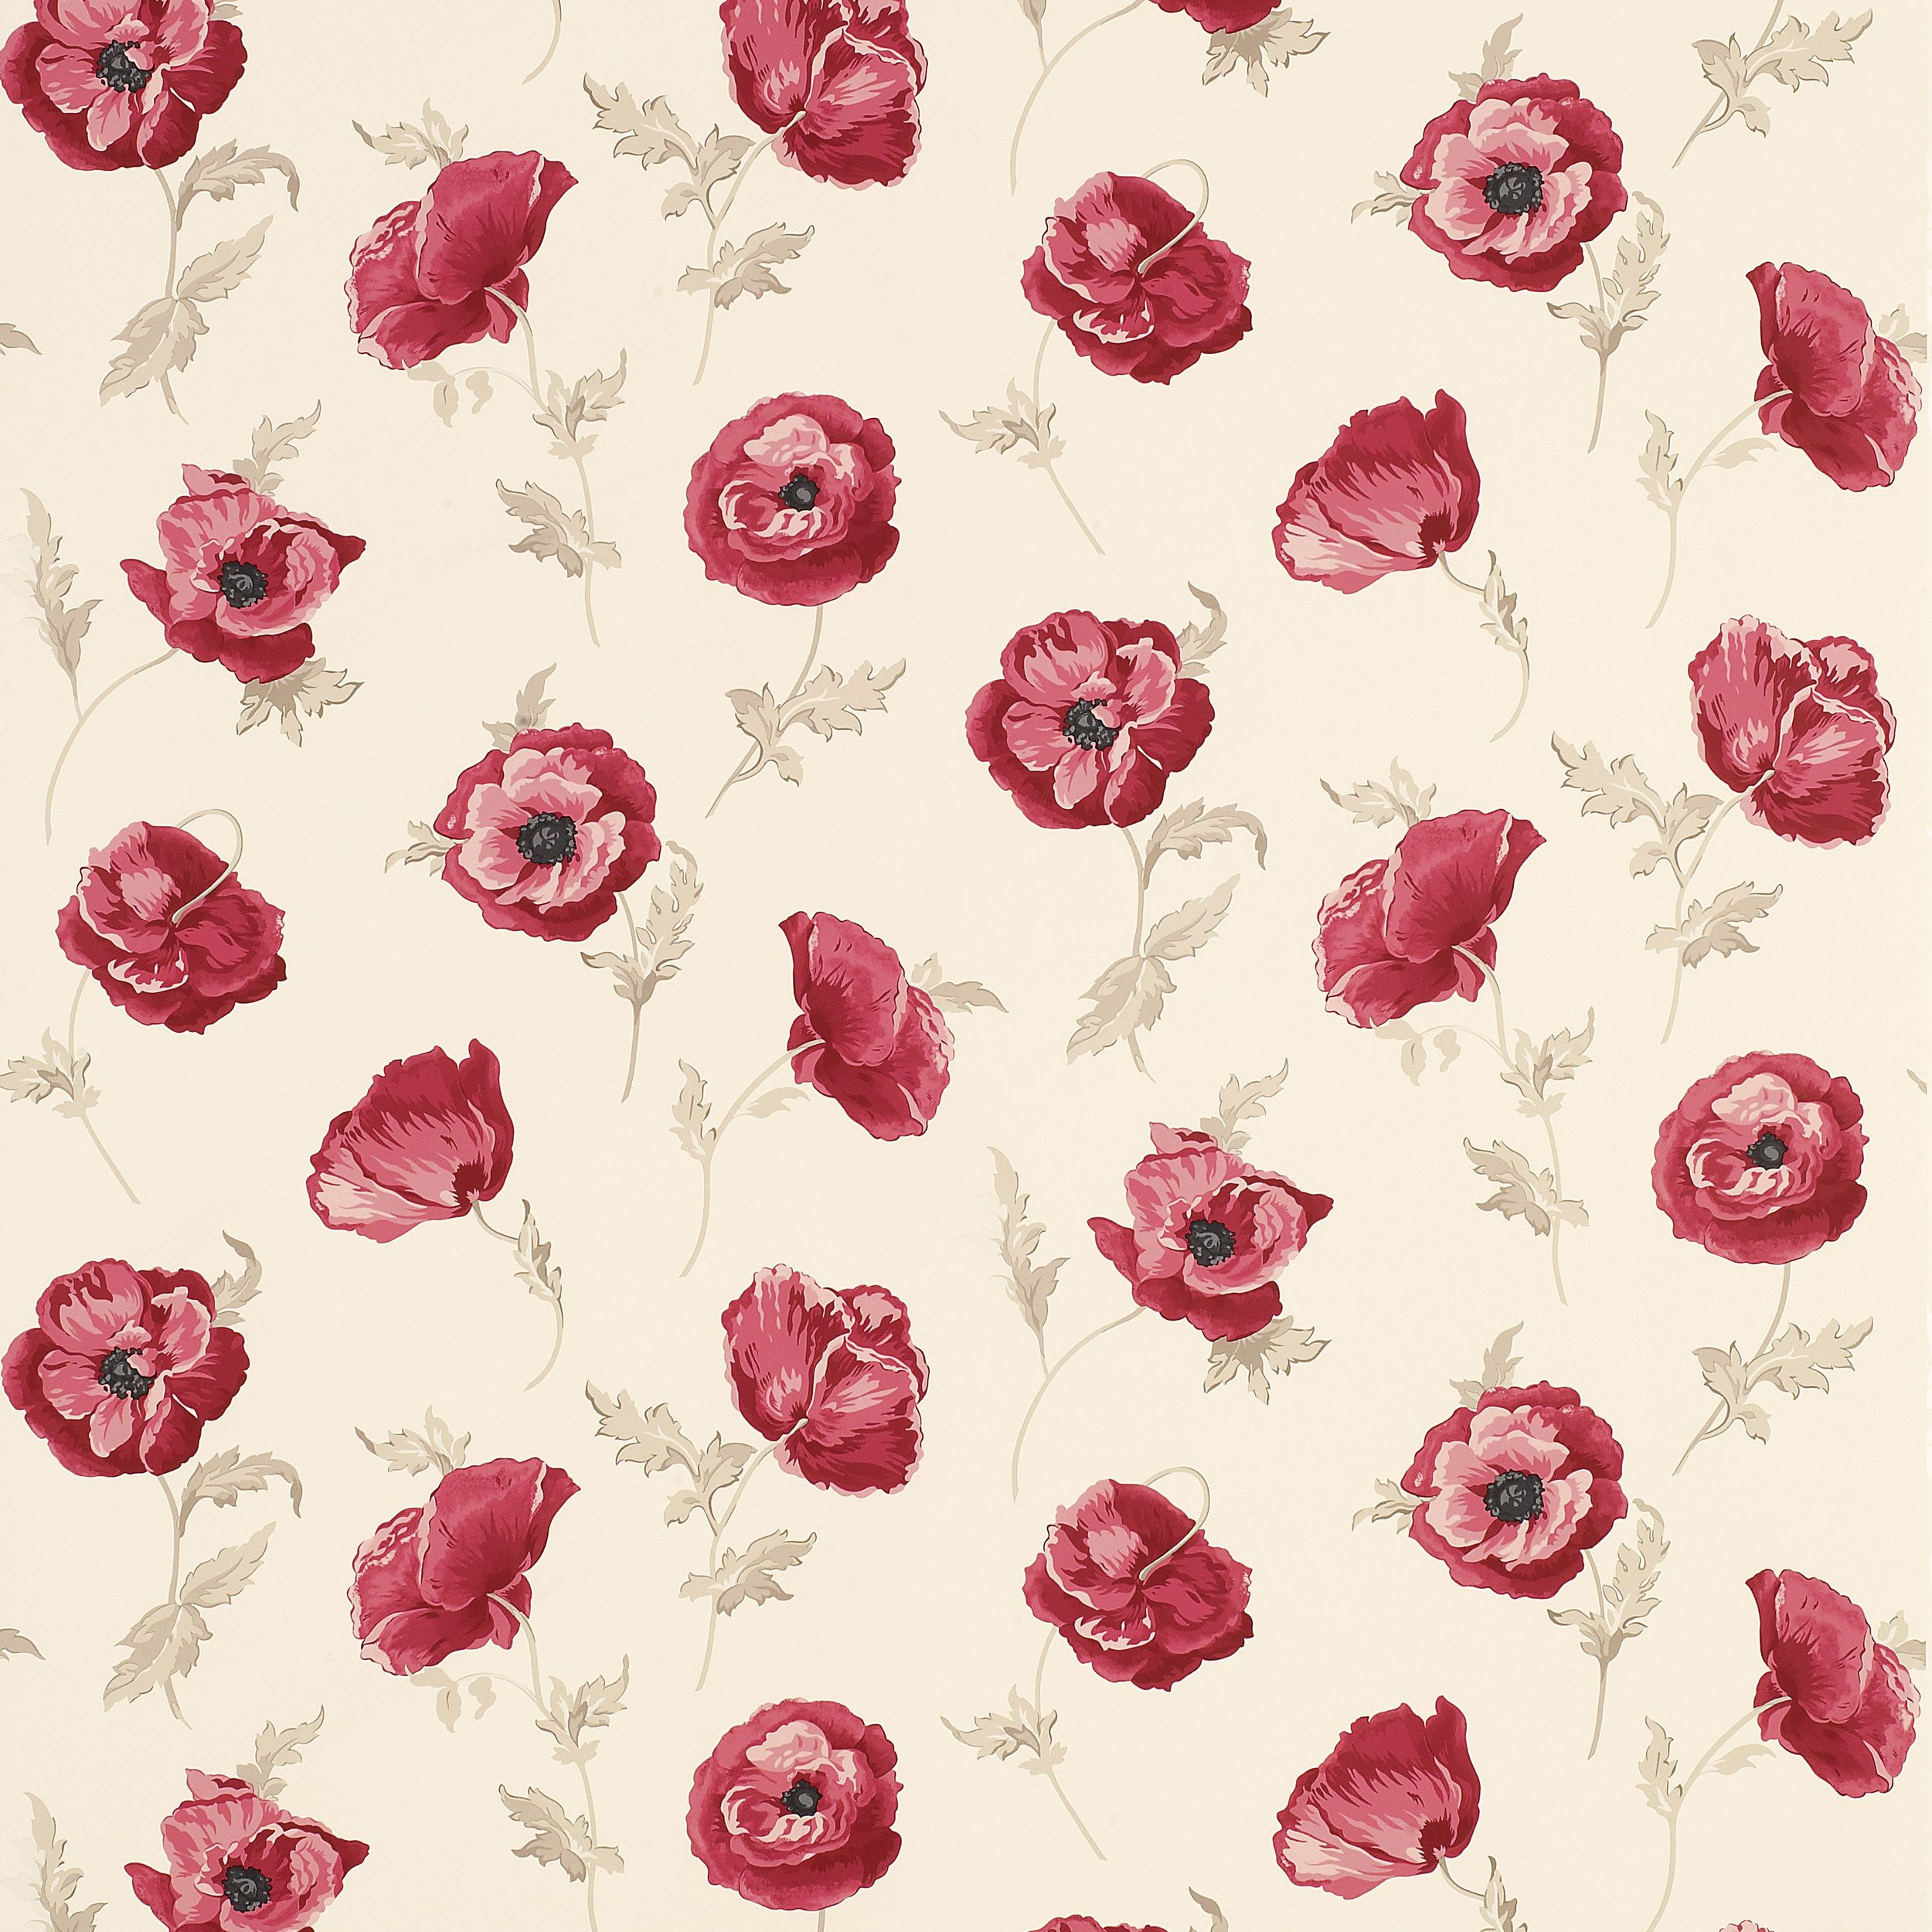 Vintage floral iphone wallpaper tumblr - Freshford Floral Red Wallpaper Mine And Andrews Room Wallpaper Iphone Vintagered